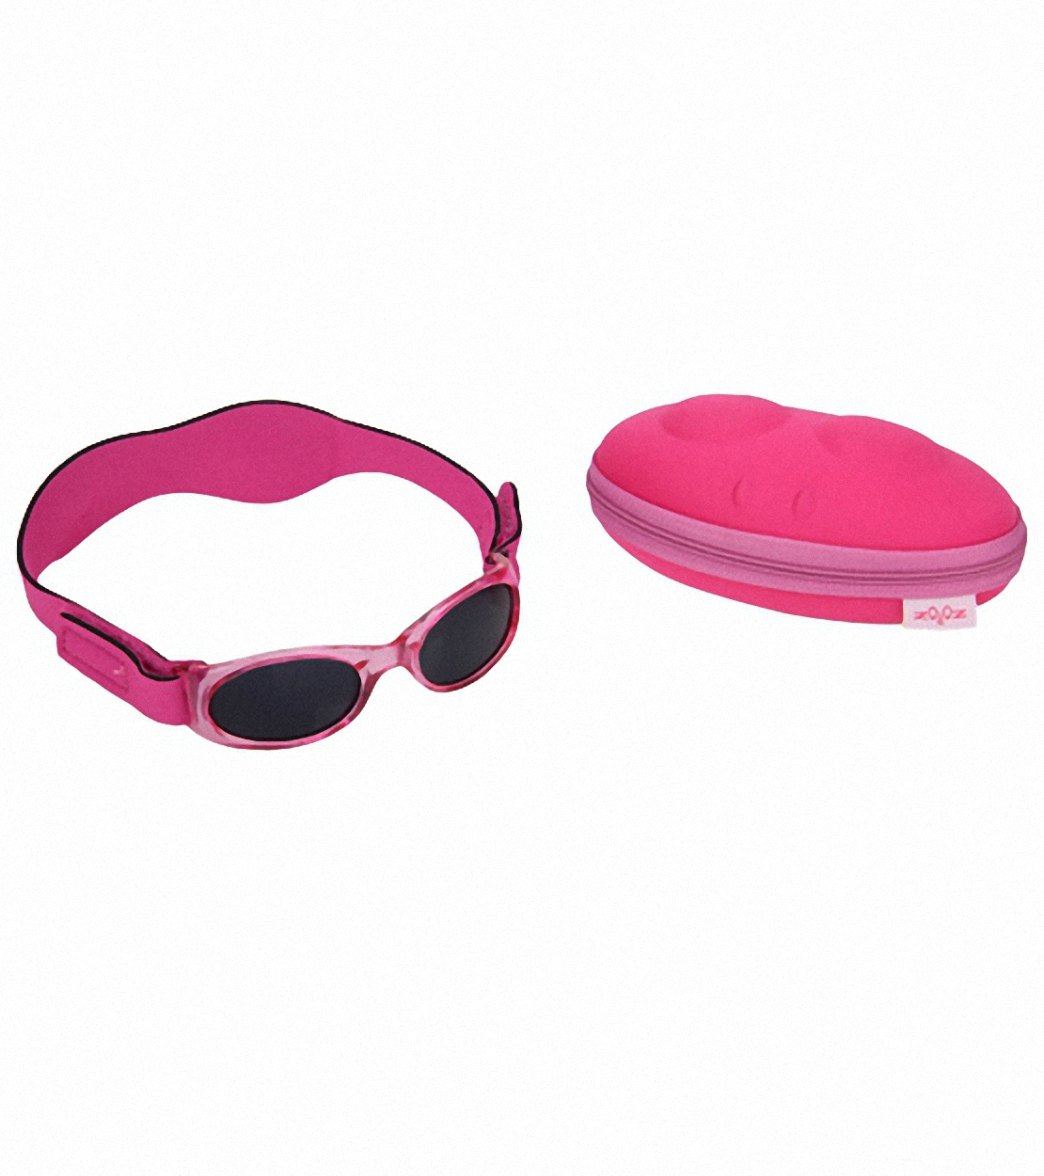 940c30714fcf Tuga Kids  Strap Around Sunglasses (0-5 years) at SwimOutlet.com